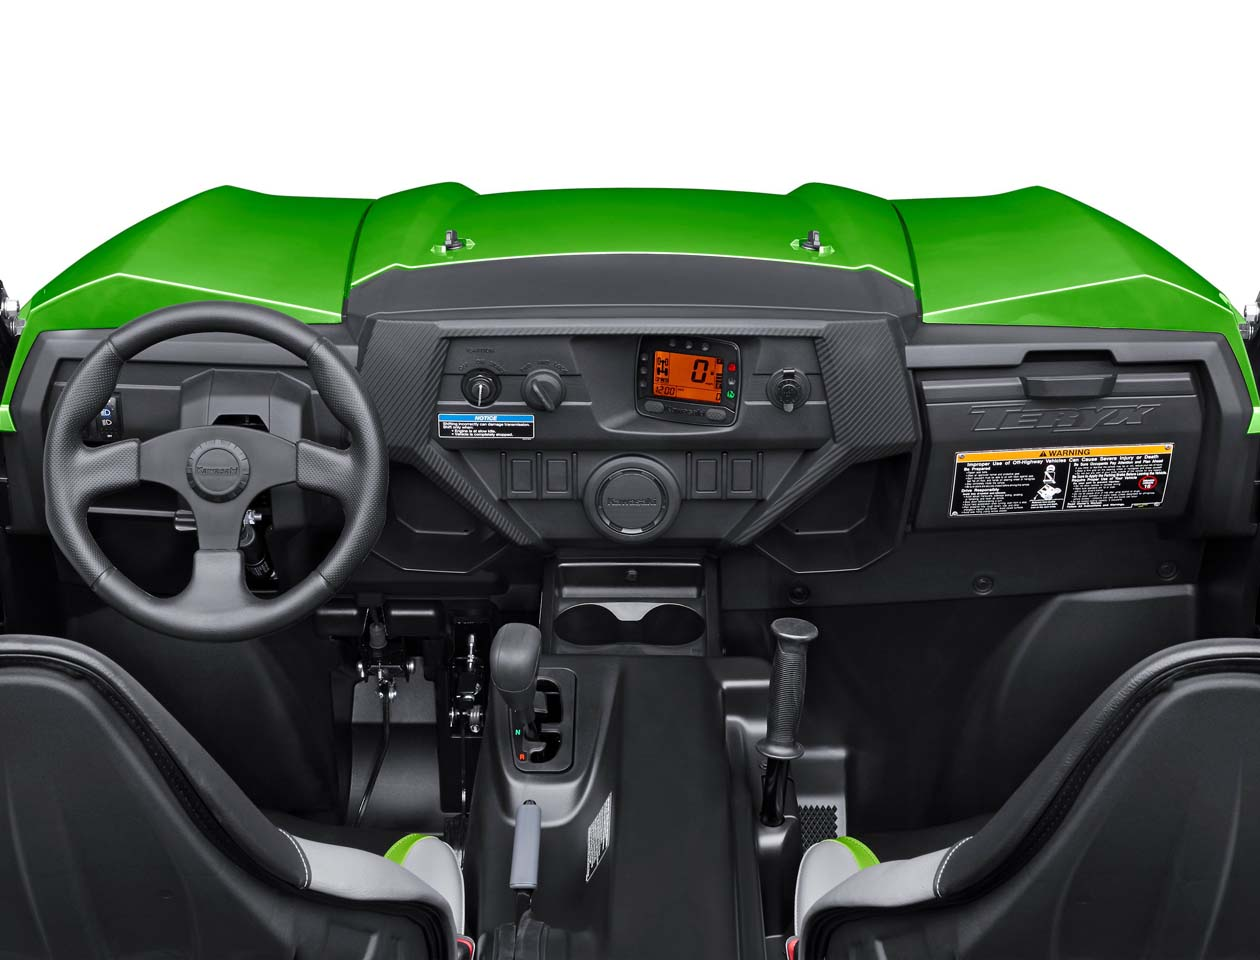 2017 Kawasaki Teryx And Teryx4 Atv Illustrated 2013 Wiring Diagram The Brand Is Synonymous With Powerful Stylish Category Leading Vehicles Information About Kawasakis Complete Line Of Powersports Products